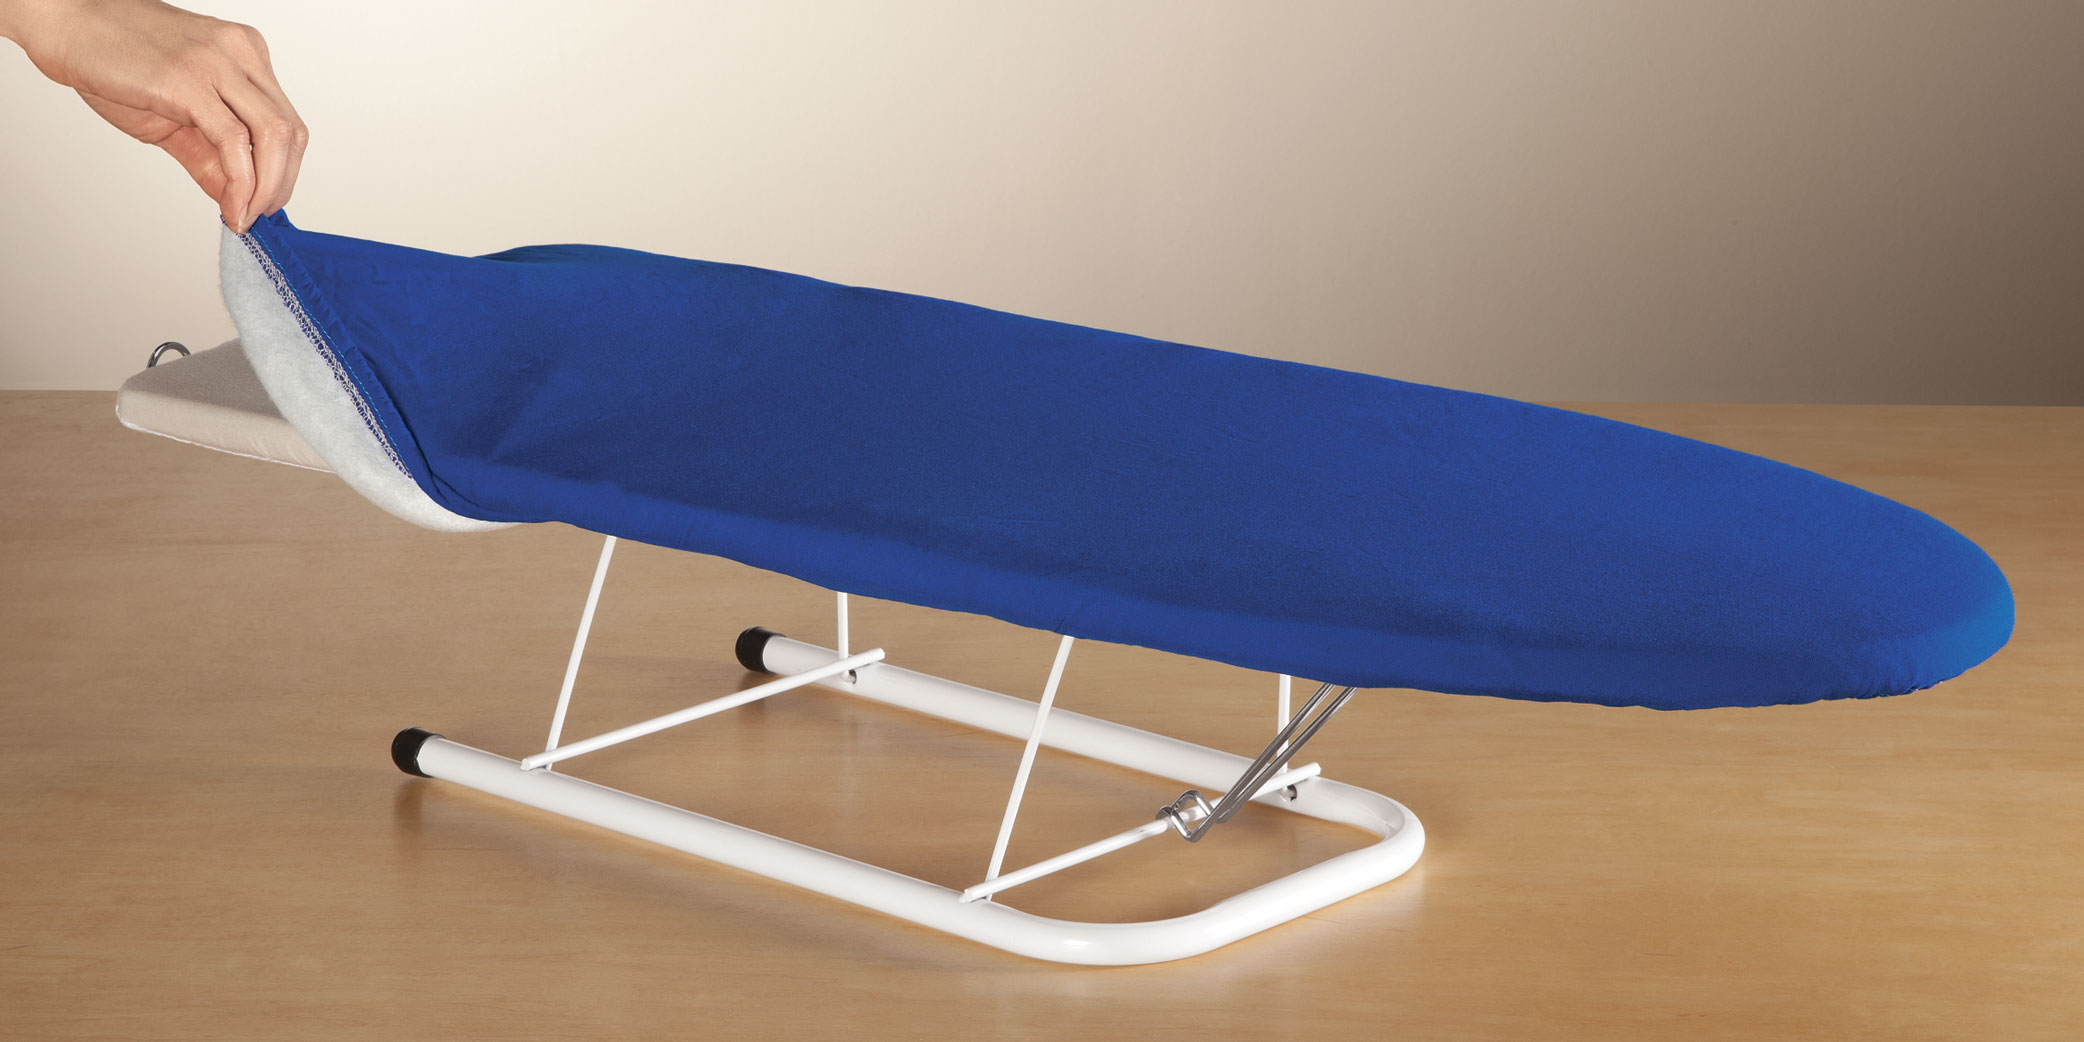 Tabletop Ironing Board Cover 840853176640 Ebay